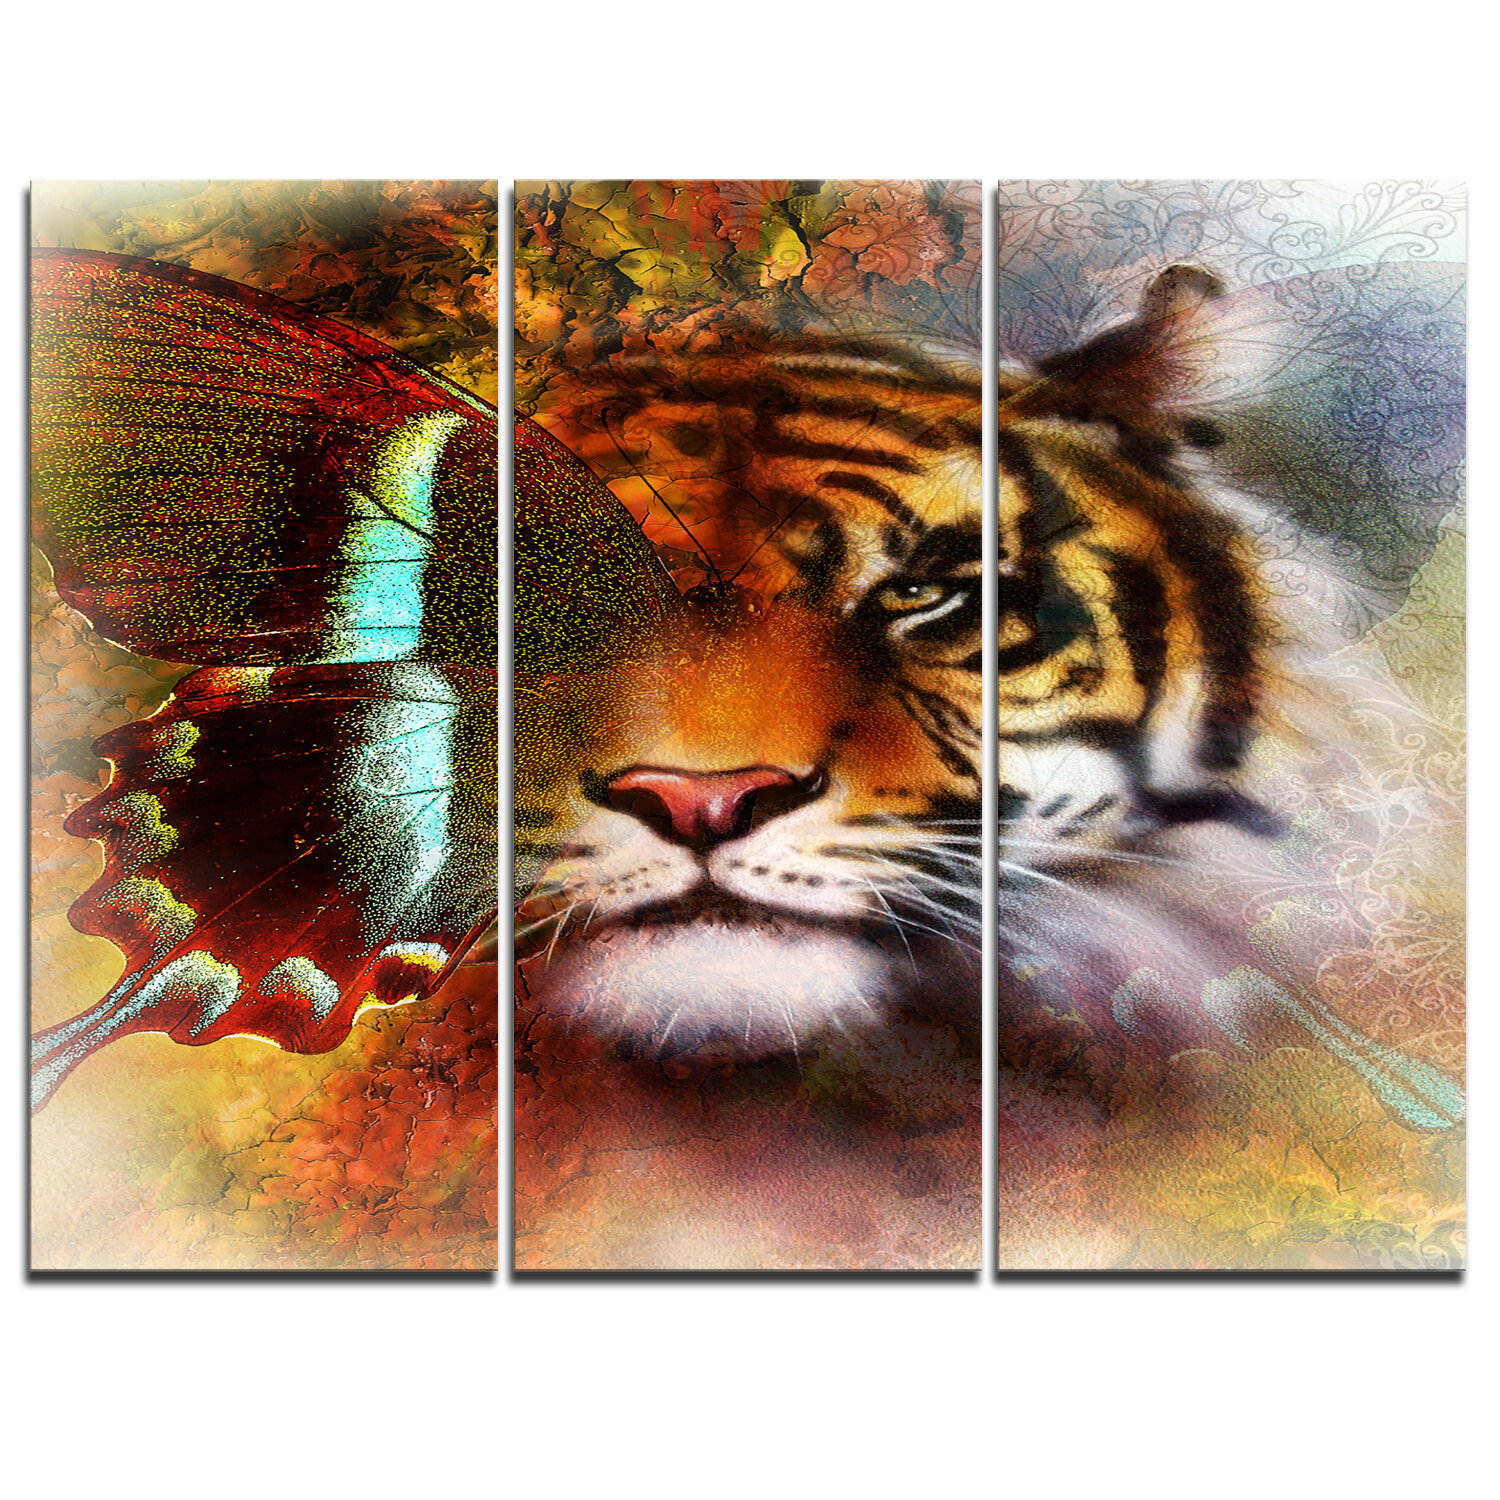 Designart Tiger With Butterfly Wings 3 Piece Graphic Art On Wrapped Canvas Set Wayfair